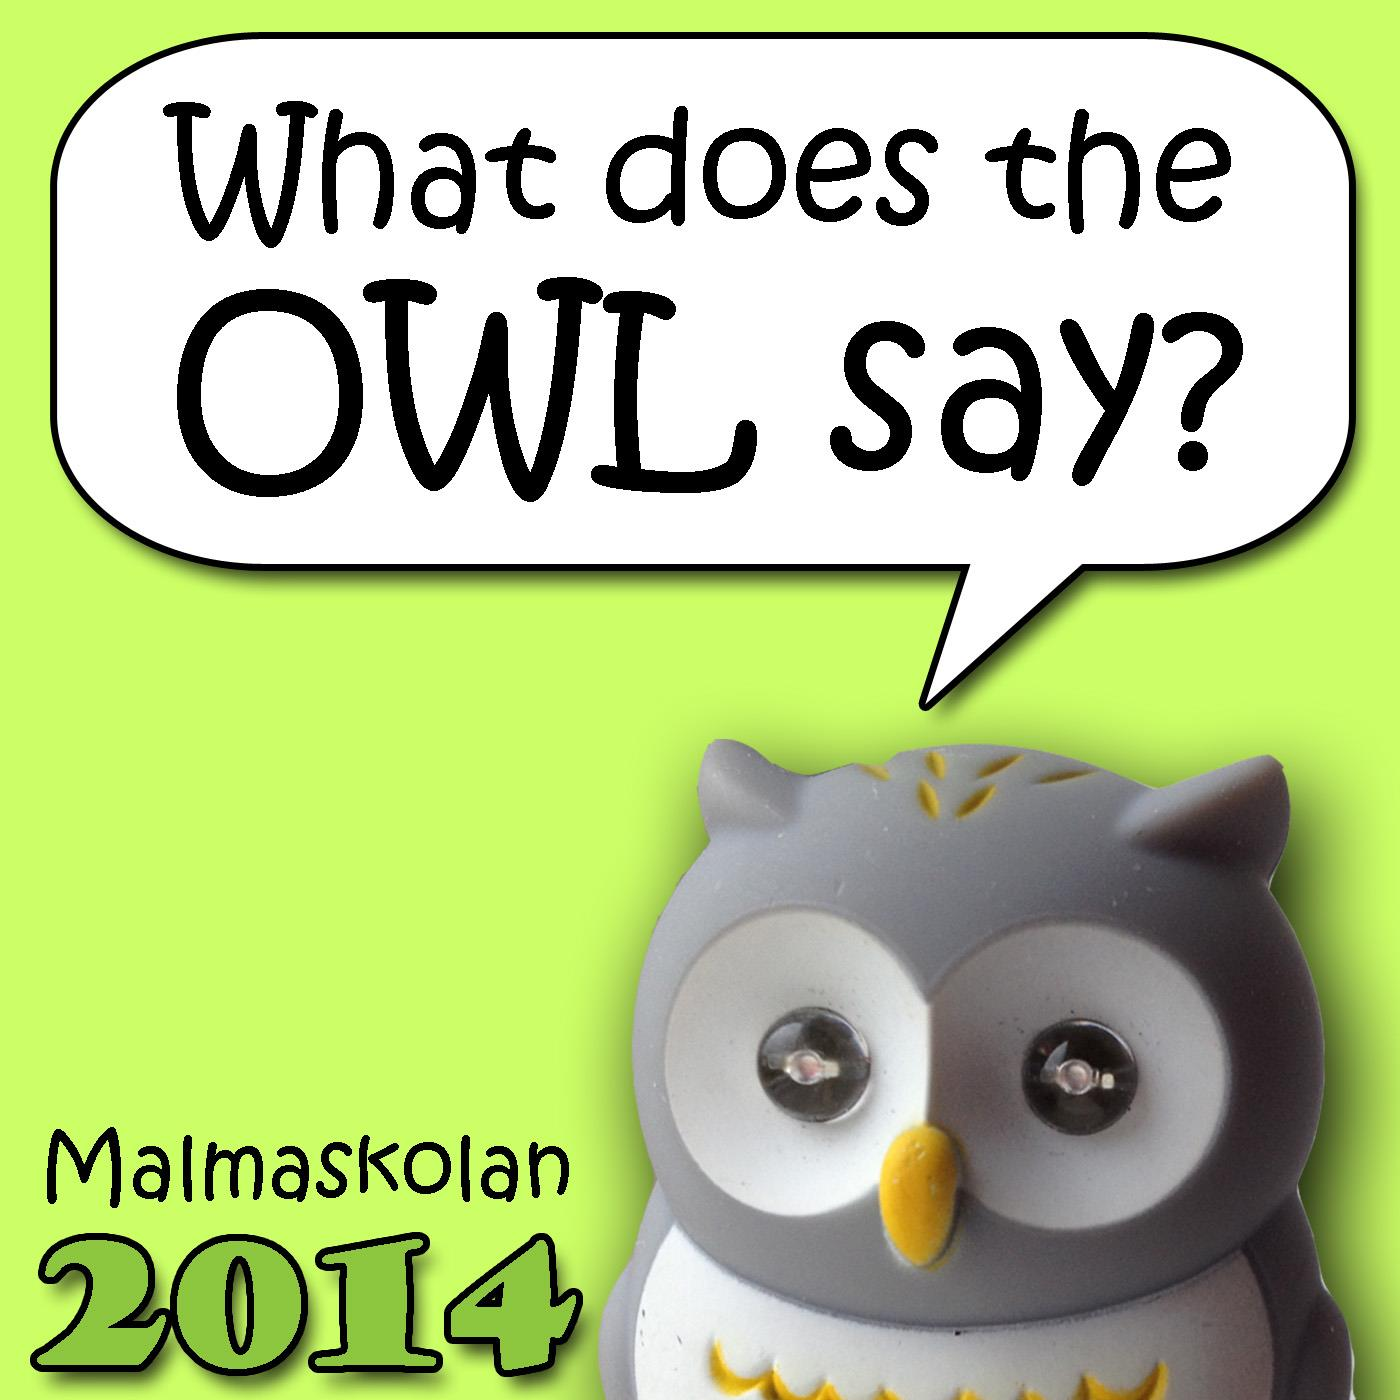 Malmaskolan 2014: What Does The Owl Say?